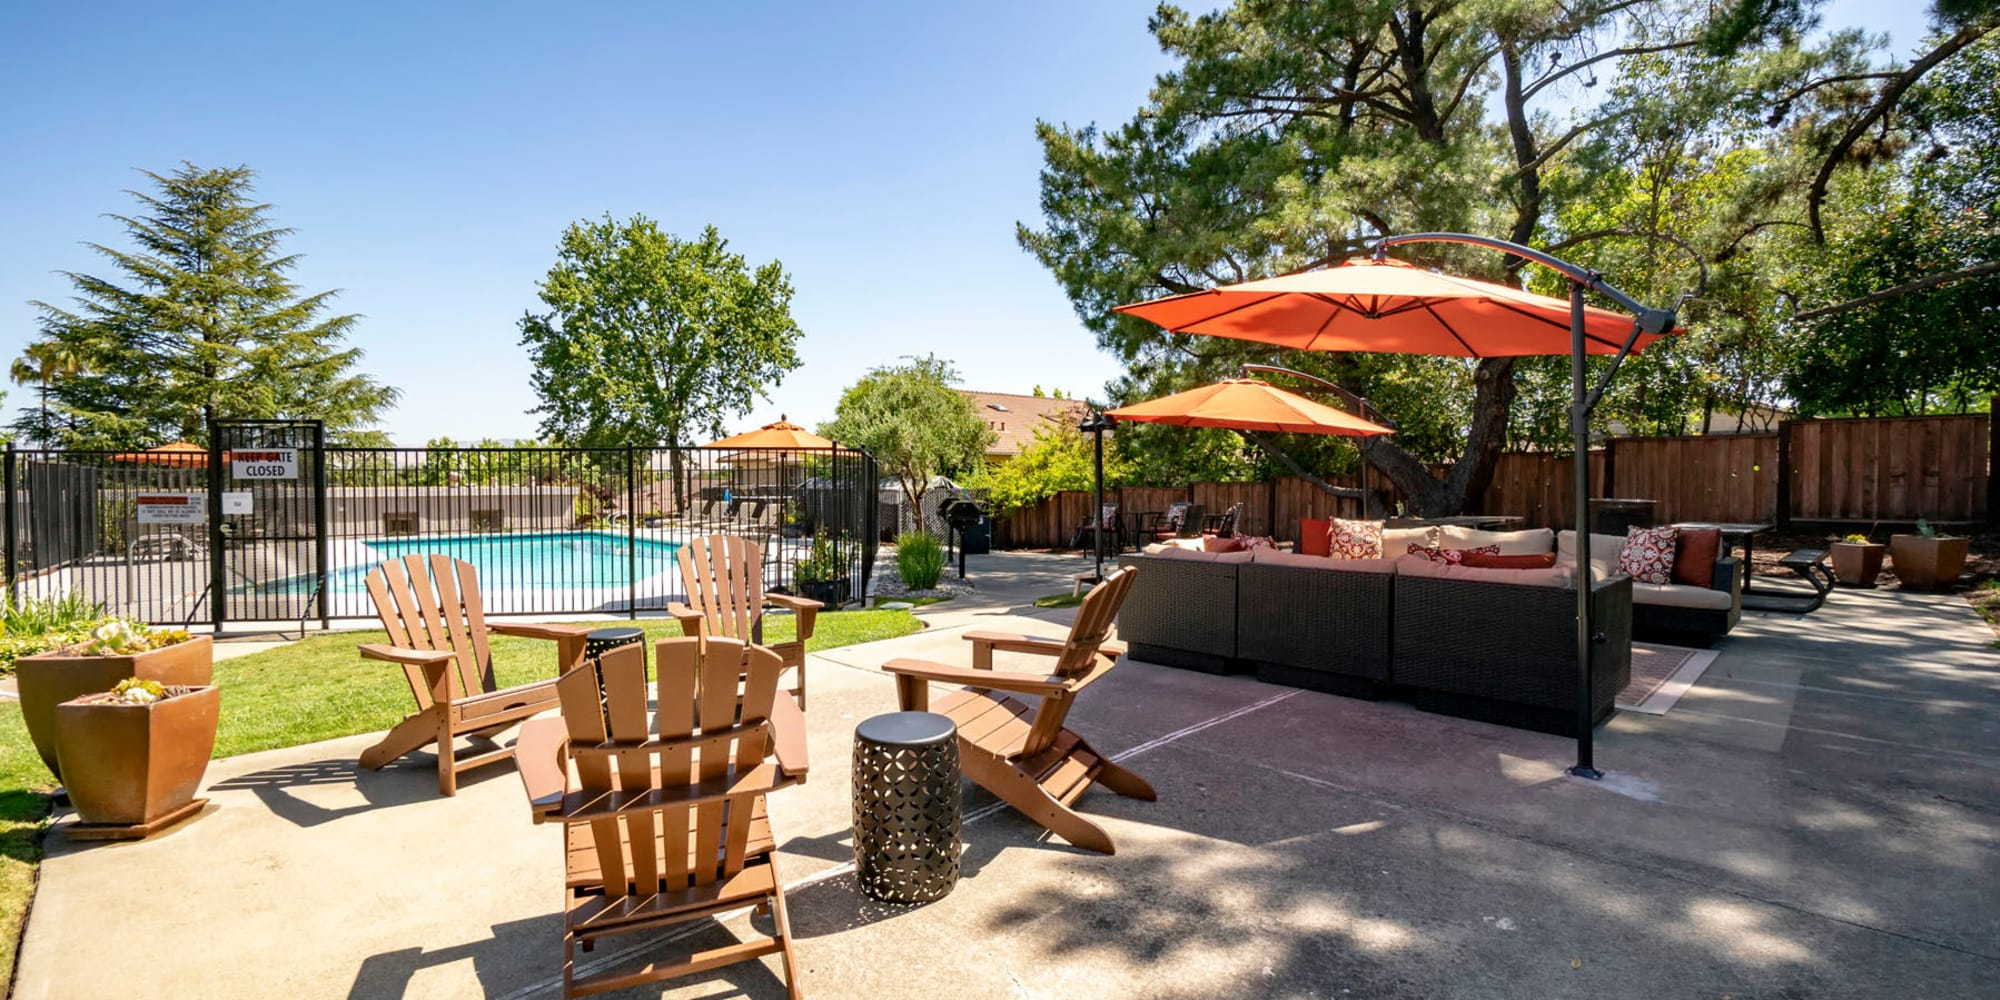 Adirondack chairs with a view of the swimming pool near the barbecue area at Pleasanton Heights in Pleasanton, California